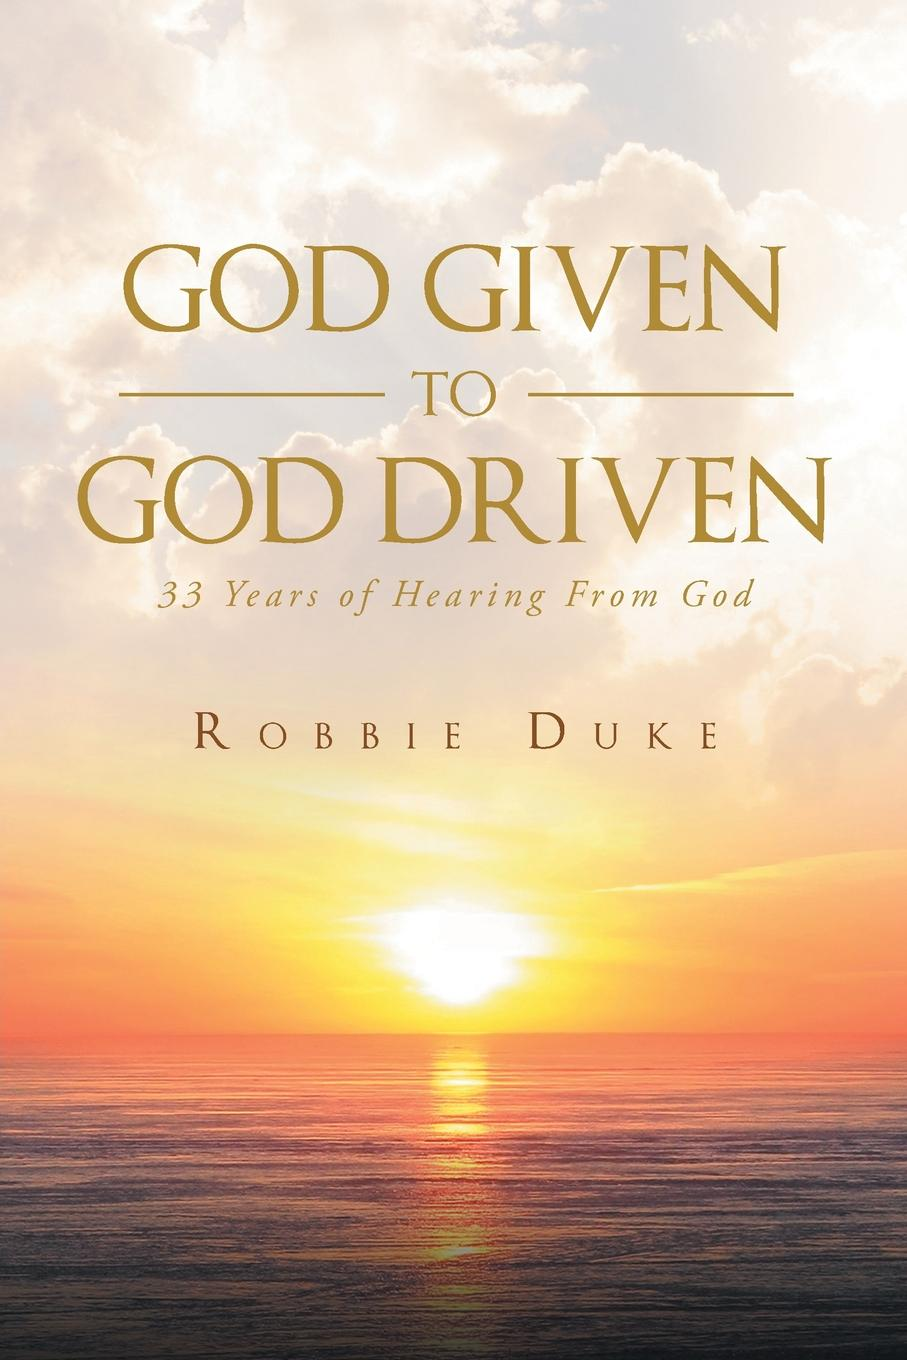 Robbie Duke God Given To God Driven. 33 Years of Hearing From God fingerband god los roselle